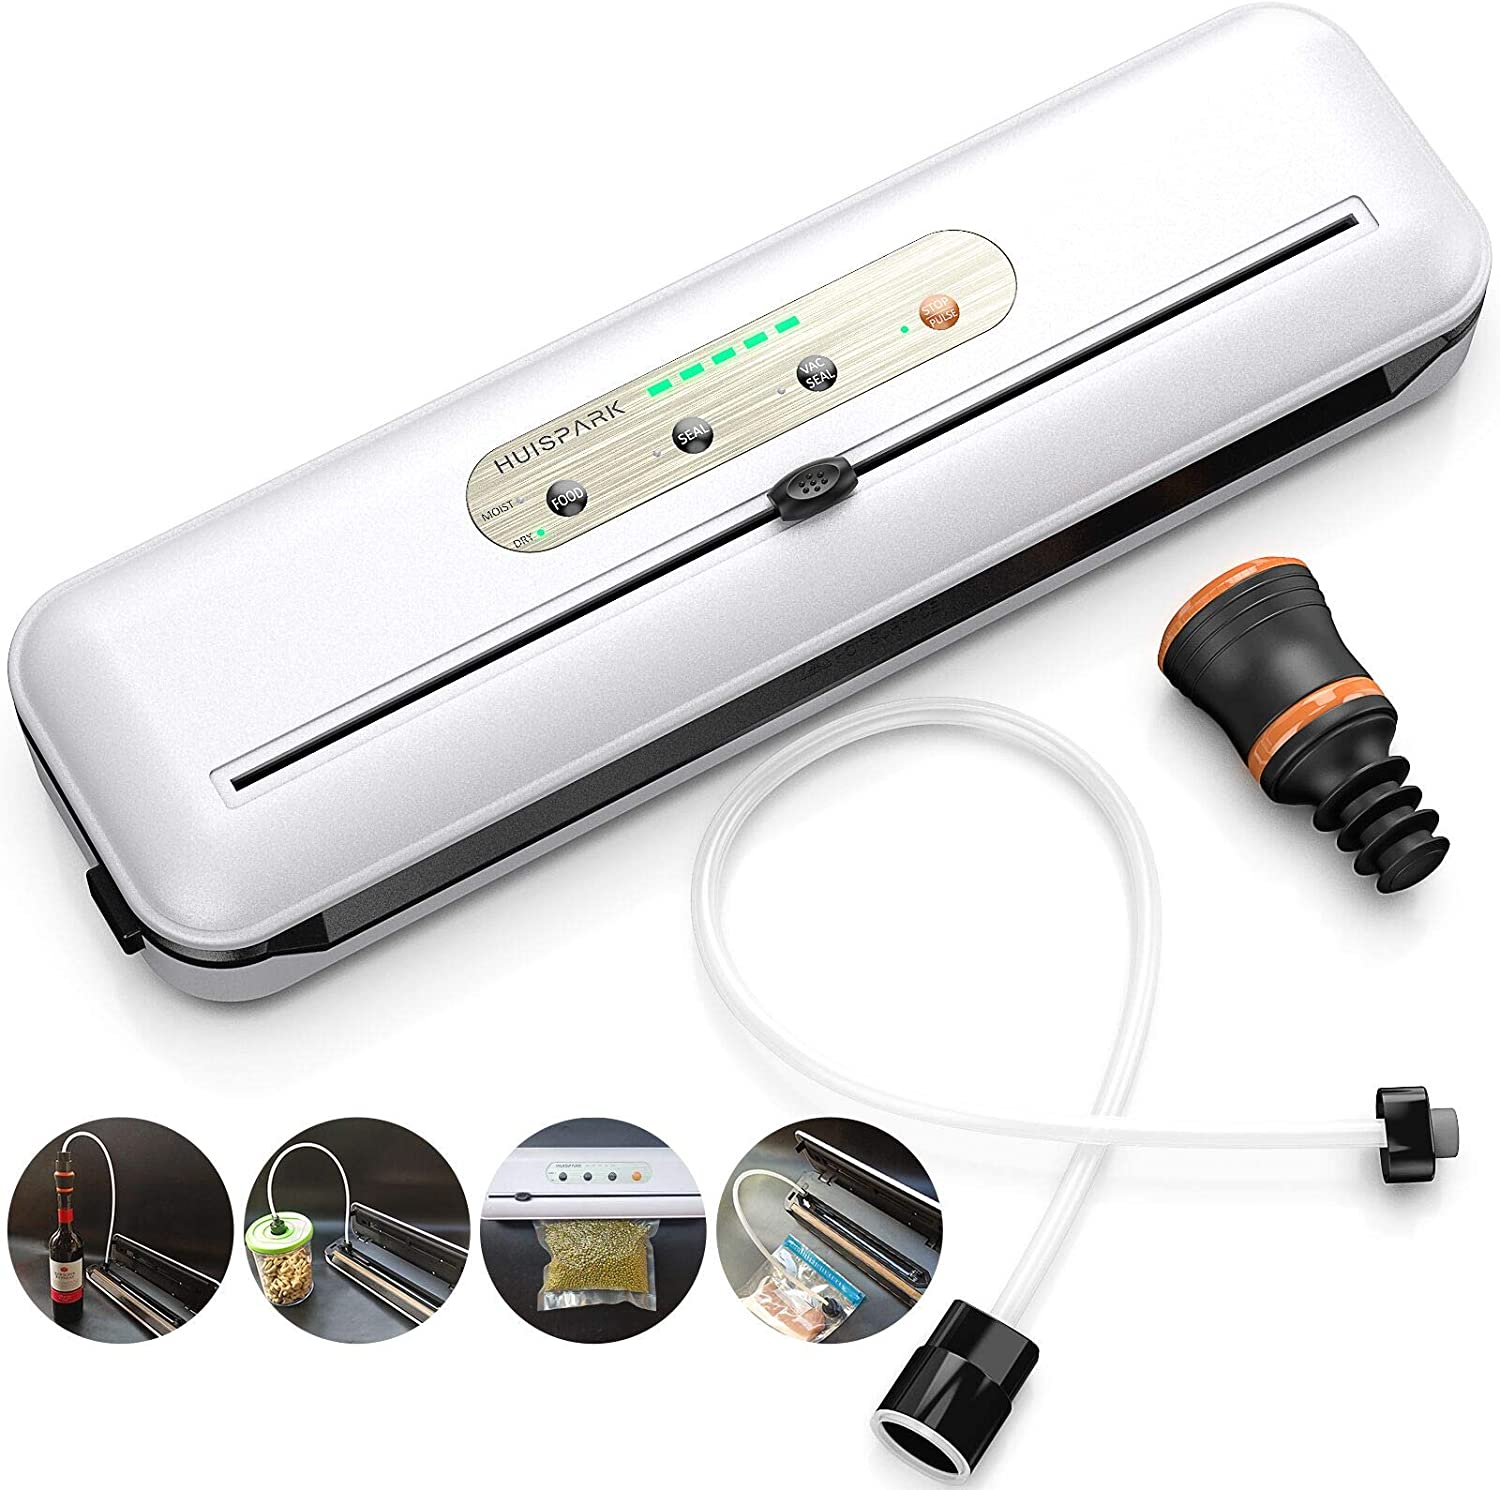 Vacuum Sealer Machine Dry&Moist 80Kpa Food Sealer Kit,Built-in Bag Cutter Inching Pause Function Food Savers,Led Indicator Lights Easy Clean Seal A Meal Vacuum Sealing Kitchen Vacuum Packer,Wine Bottle Sous Vide Bag Vacuum Sealer Bags Cansister Food Container Jar Vacuum Machine(White All in One)